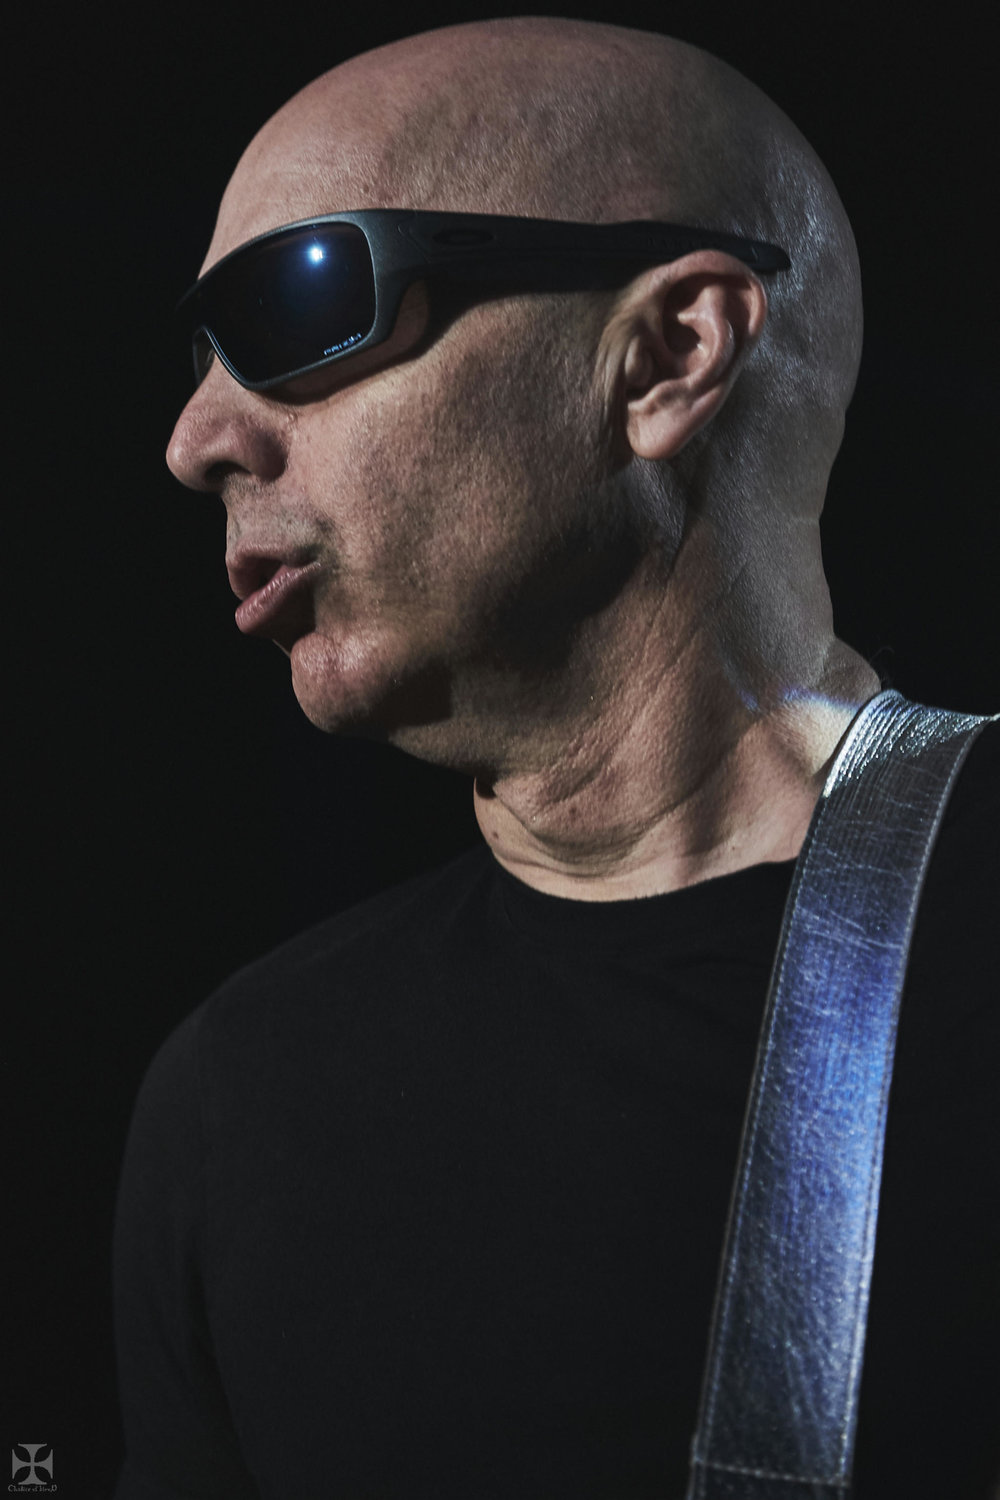 2018.12.04 Joe Satriani - DSCF6864_branded.jpg